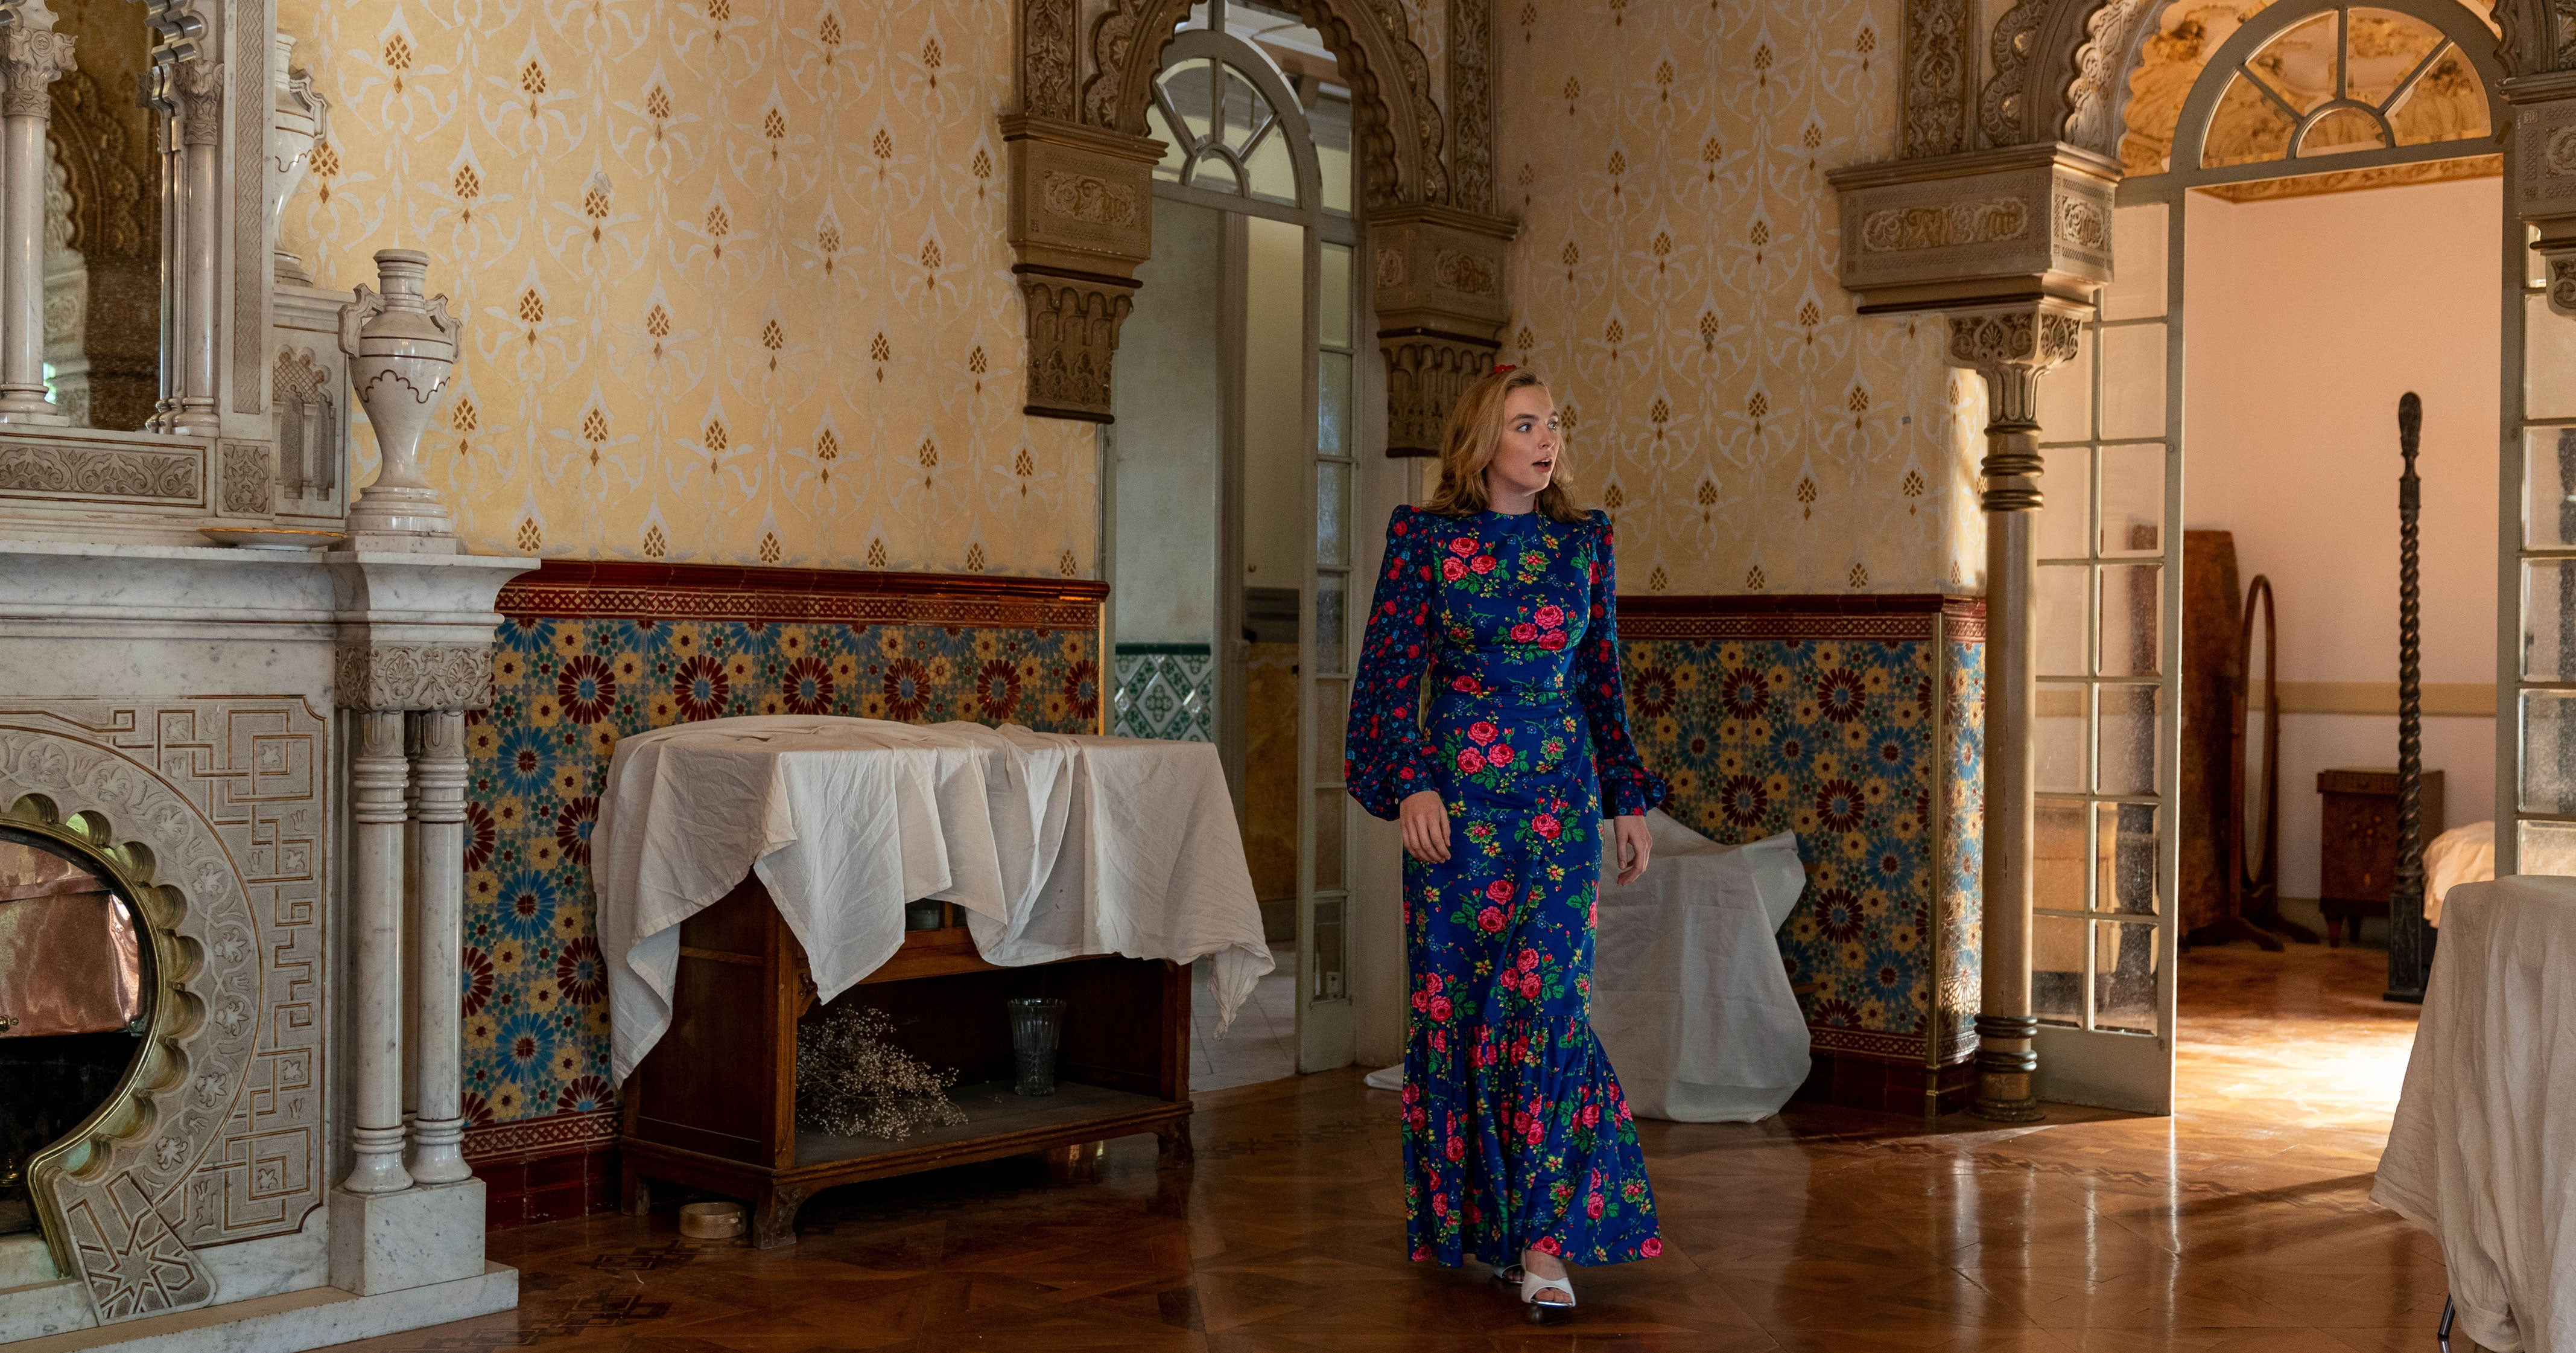 Villanelle's Barcelona Apartment Is Available On Airbnb